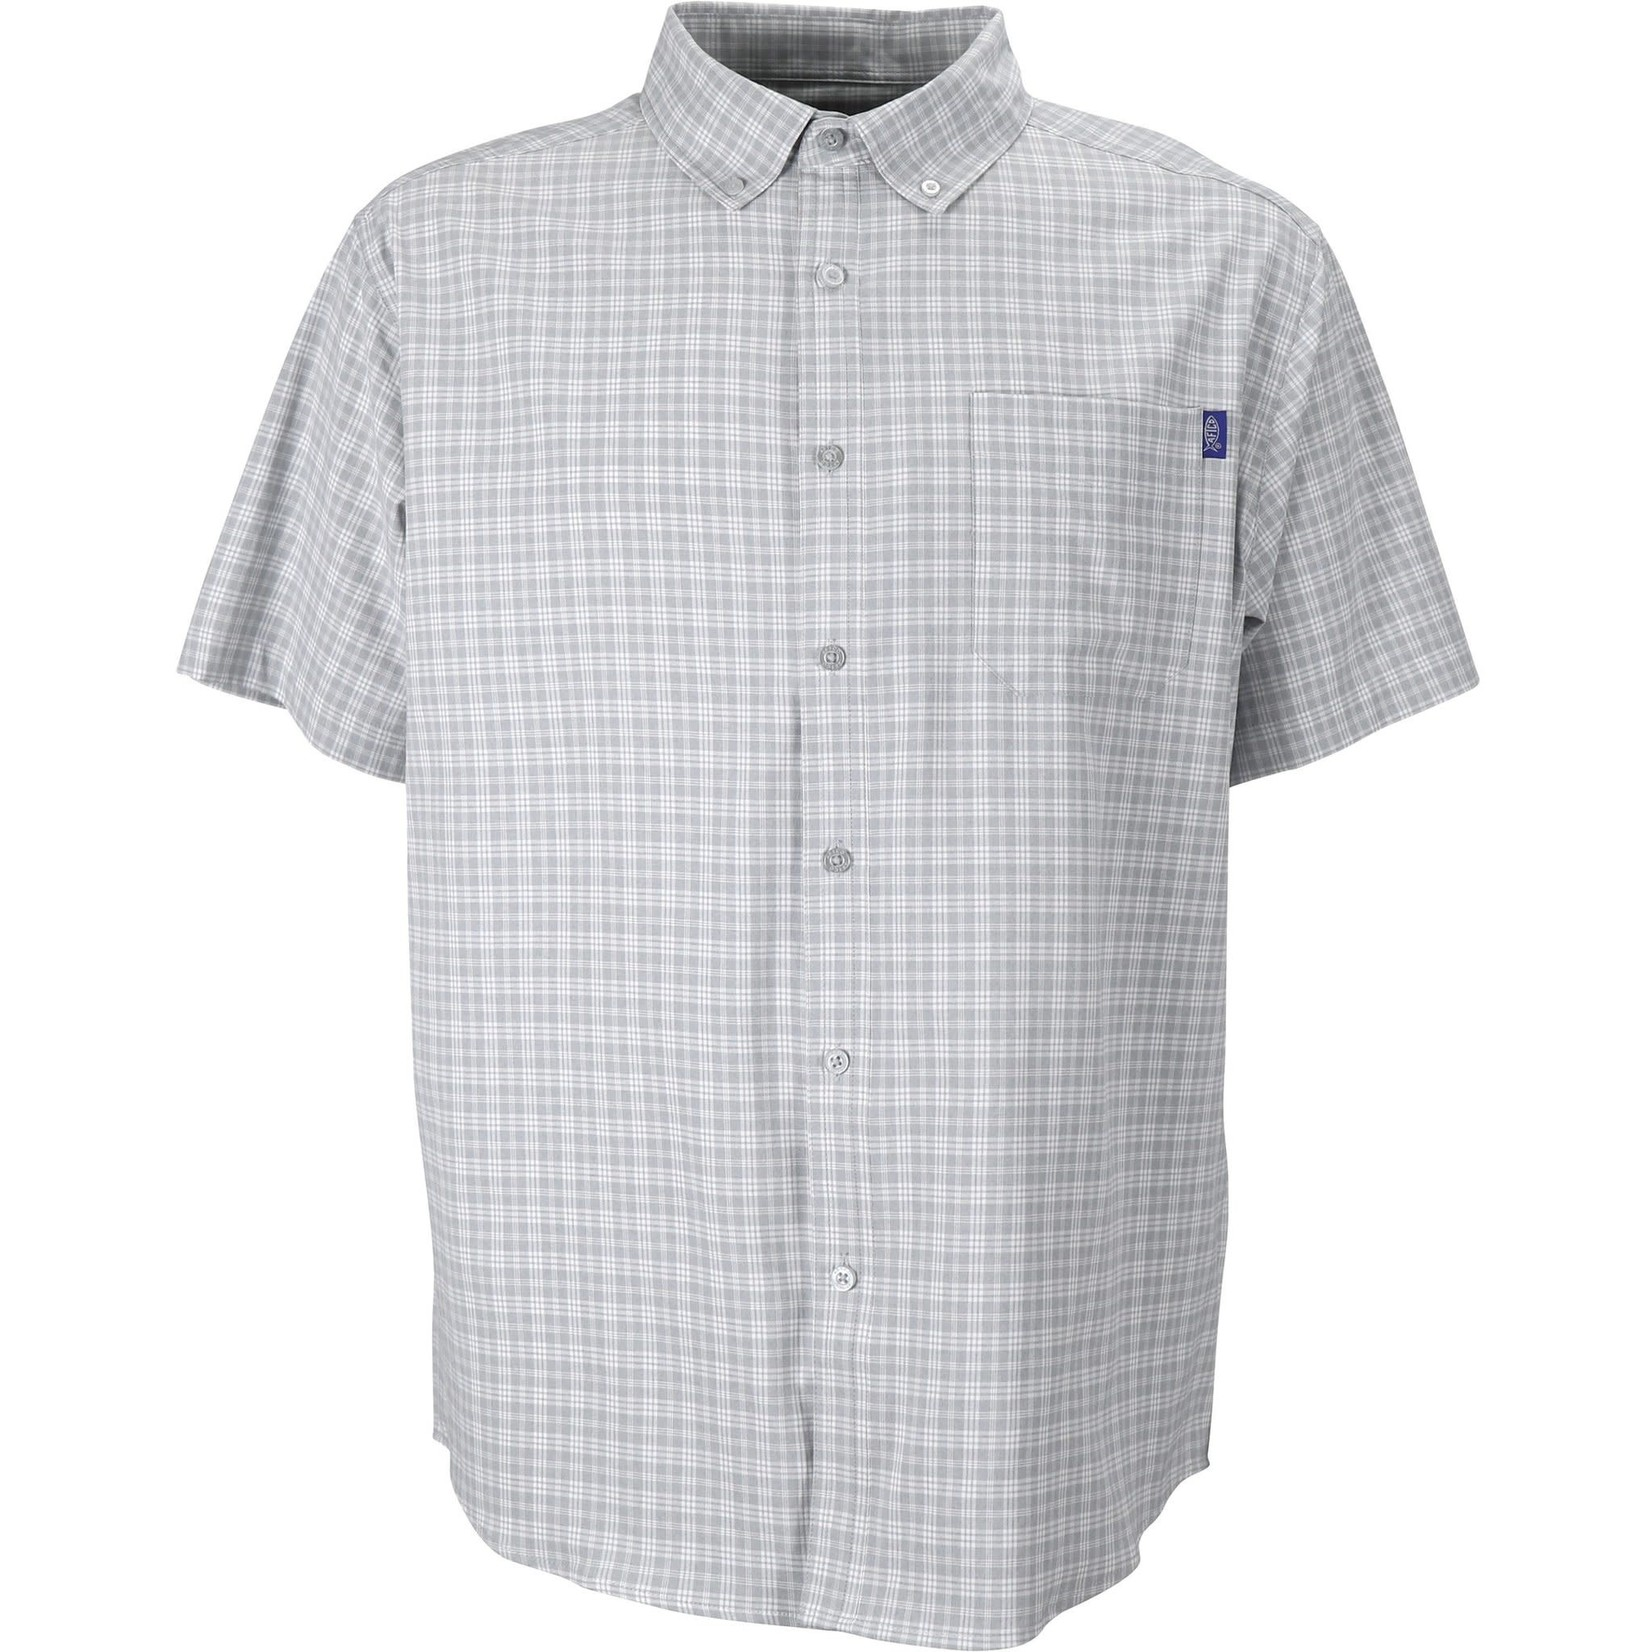 AFTCO DORSAL SS BUTTON DOWN SHIRT